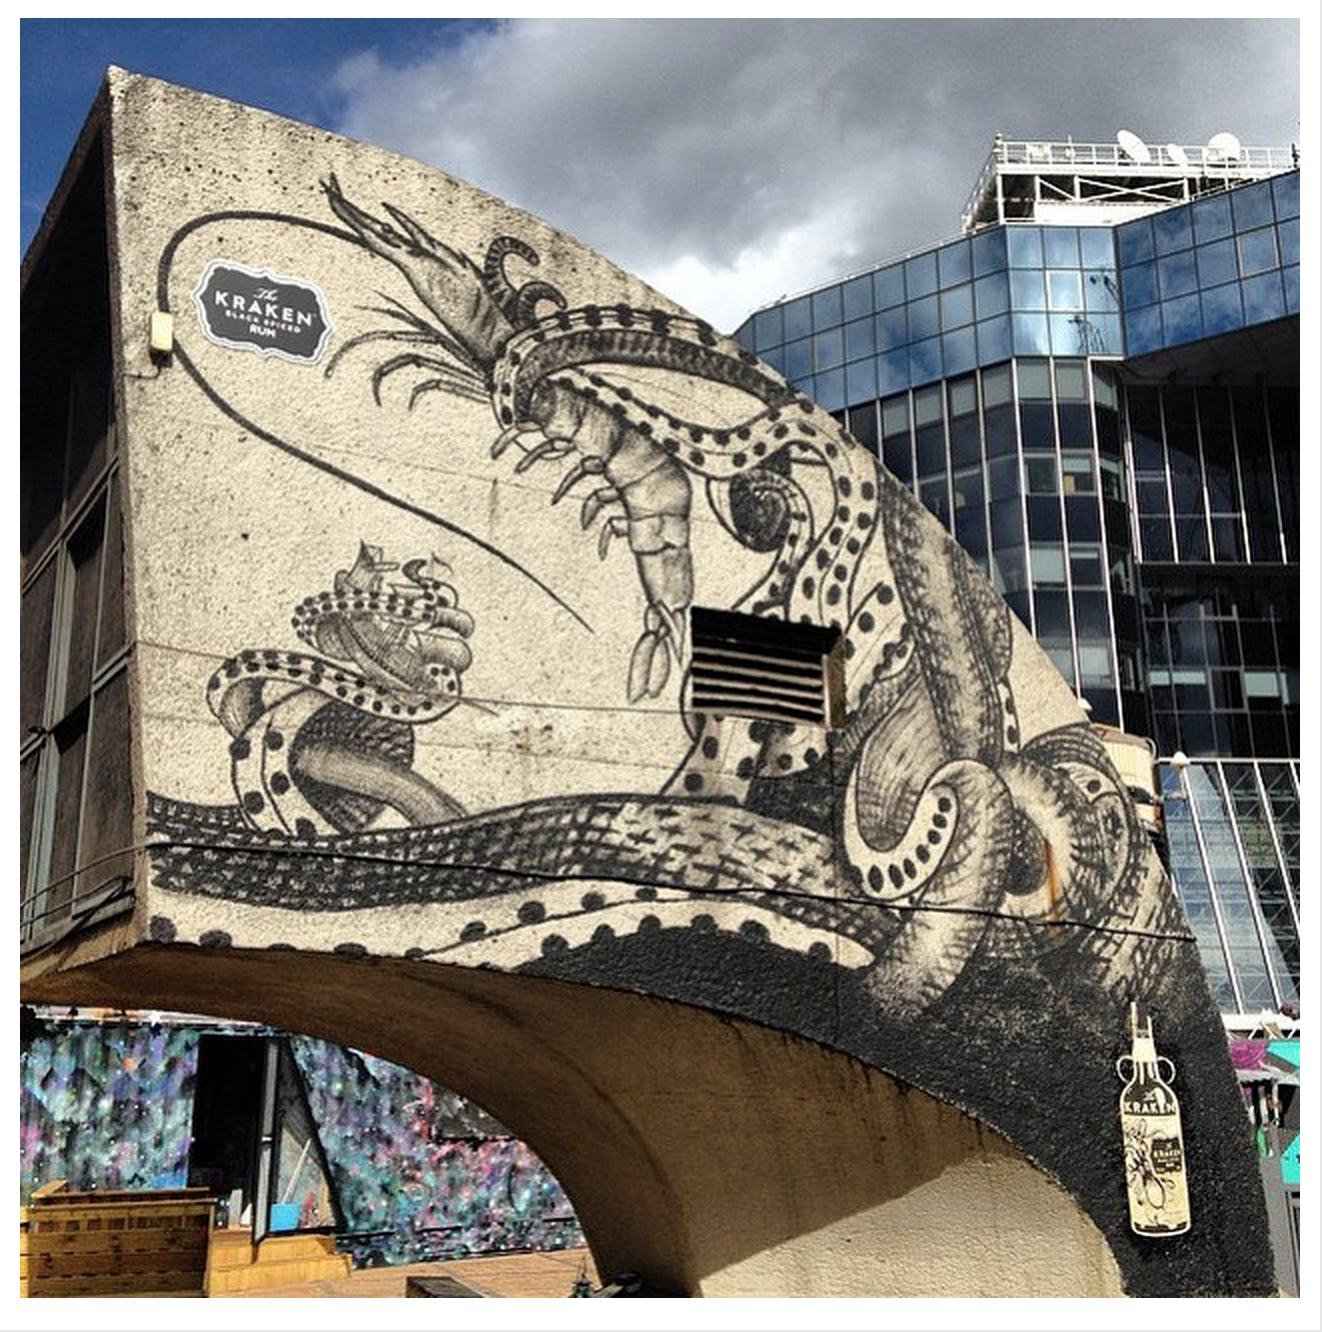 Kraken Rum inspired mural for Prawnography on Old Street Station